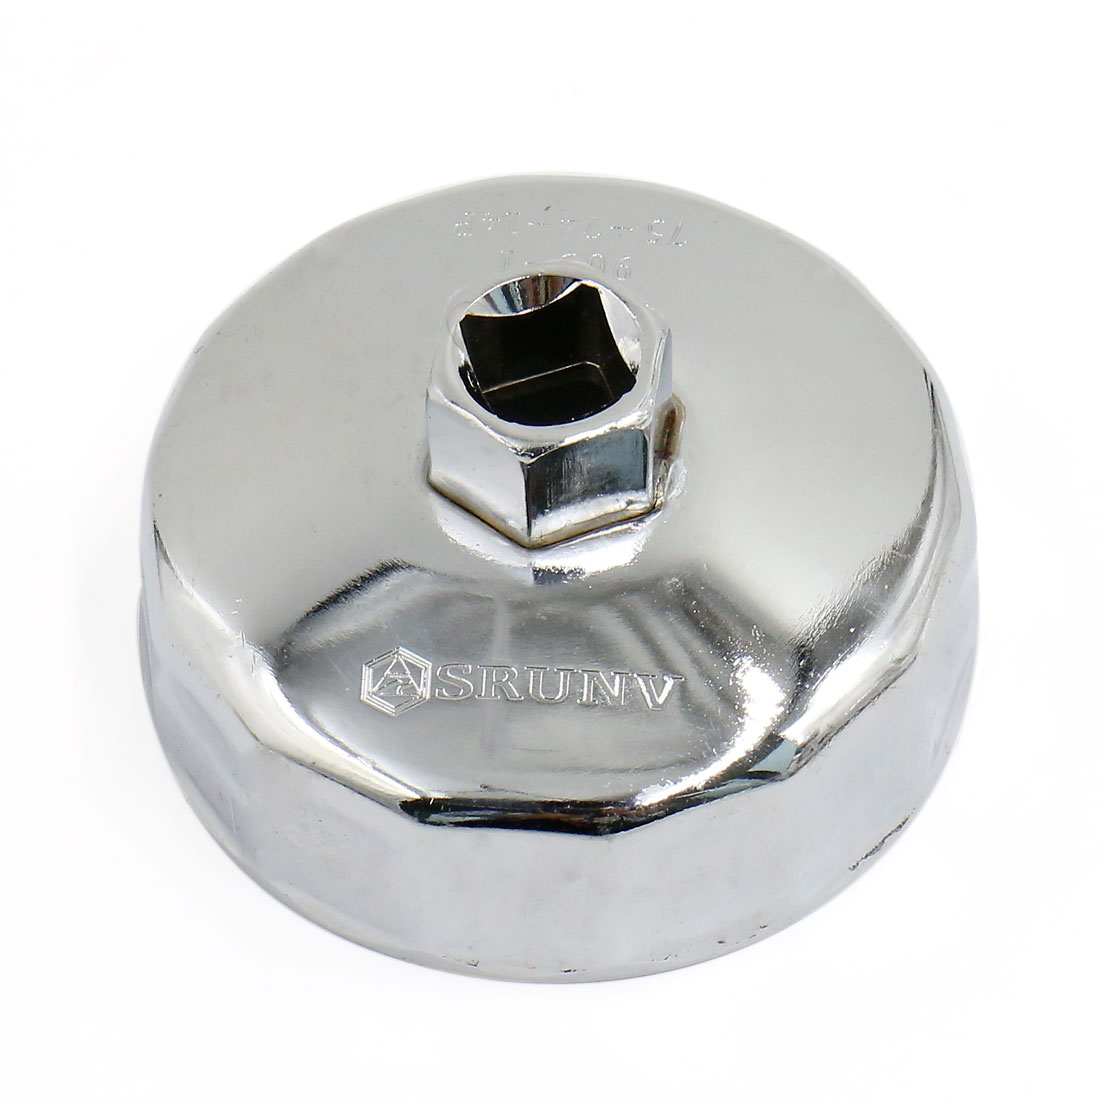 75mm Auto Car Removal Tool Stainless Steel 13mm Square Drive Oil Filter Wrench Cap